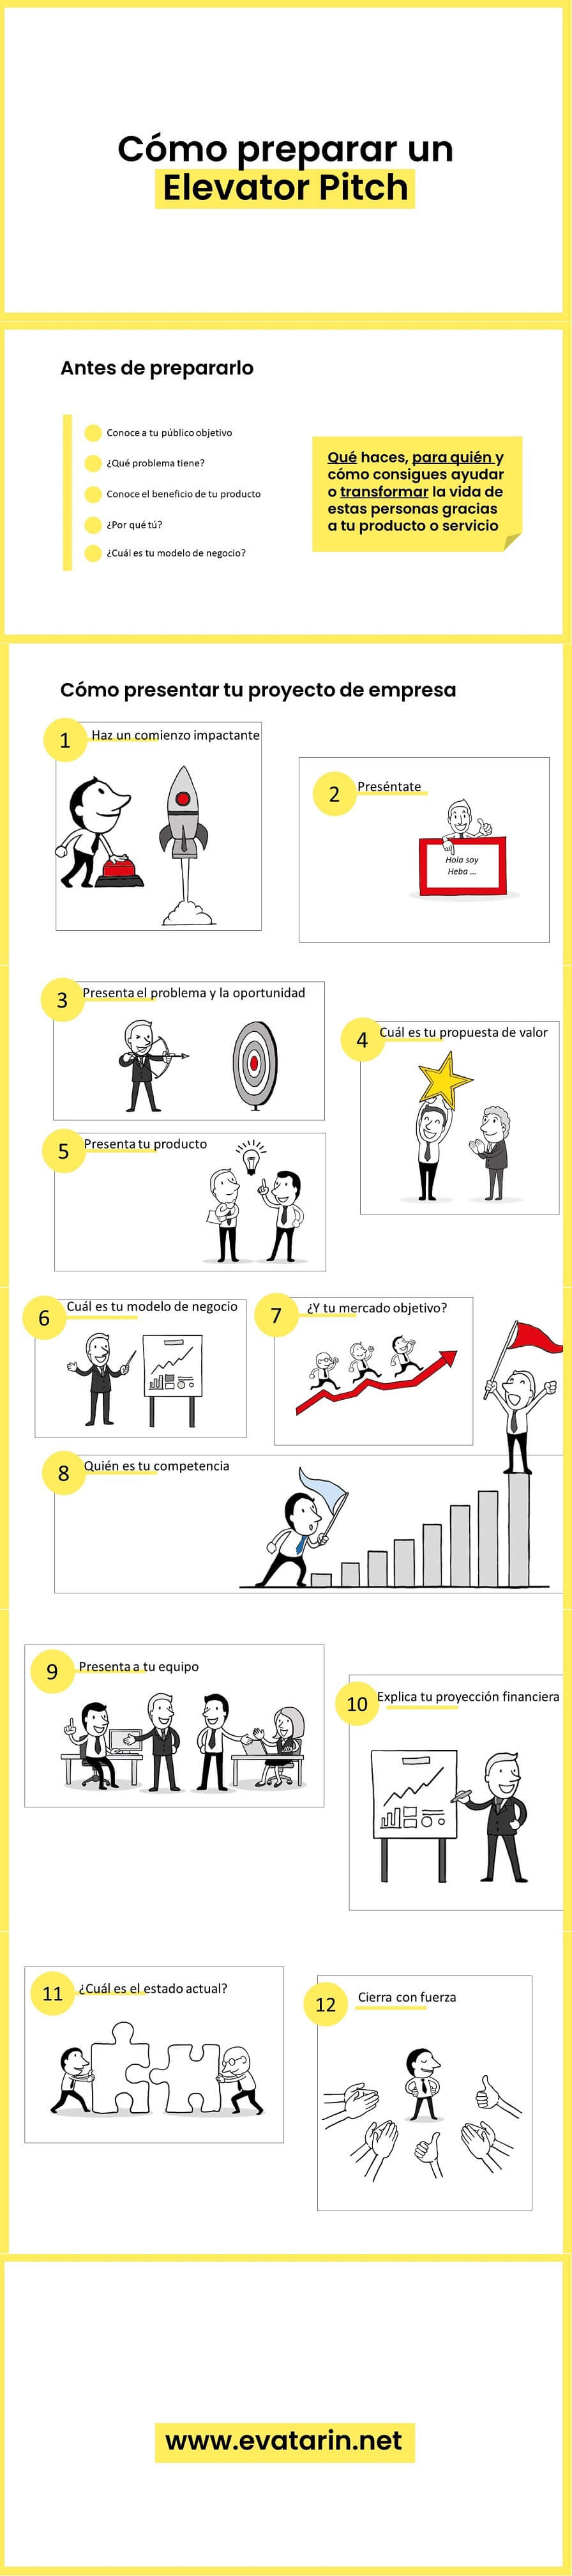 elevator pitch infografia